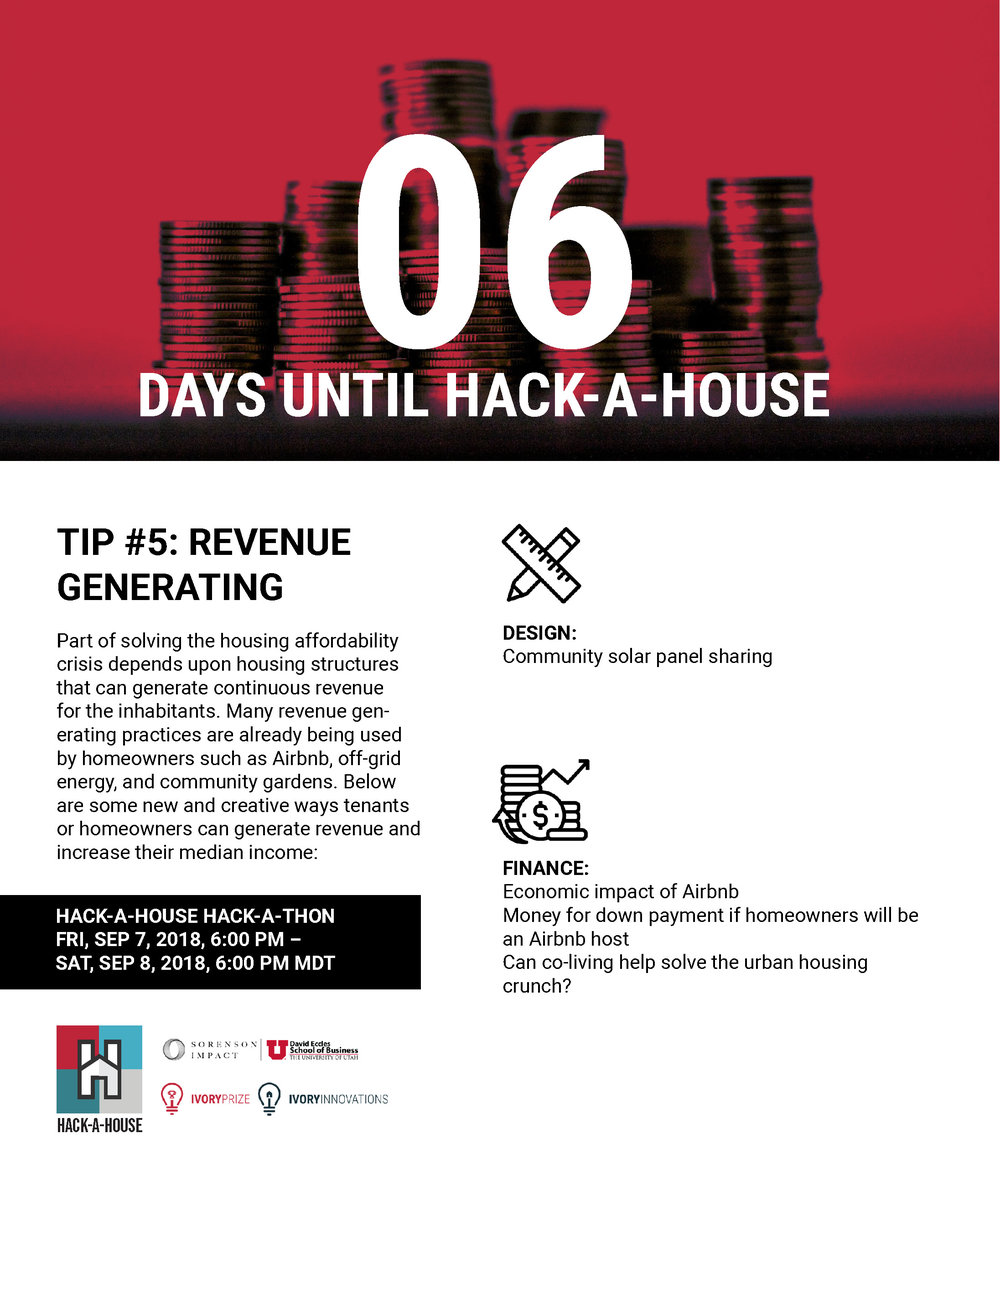 hack-a-house countdown_05.jpg